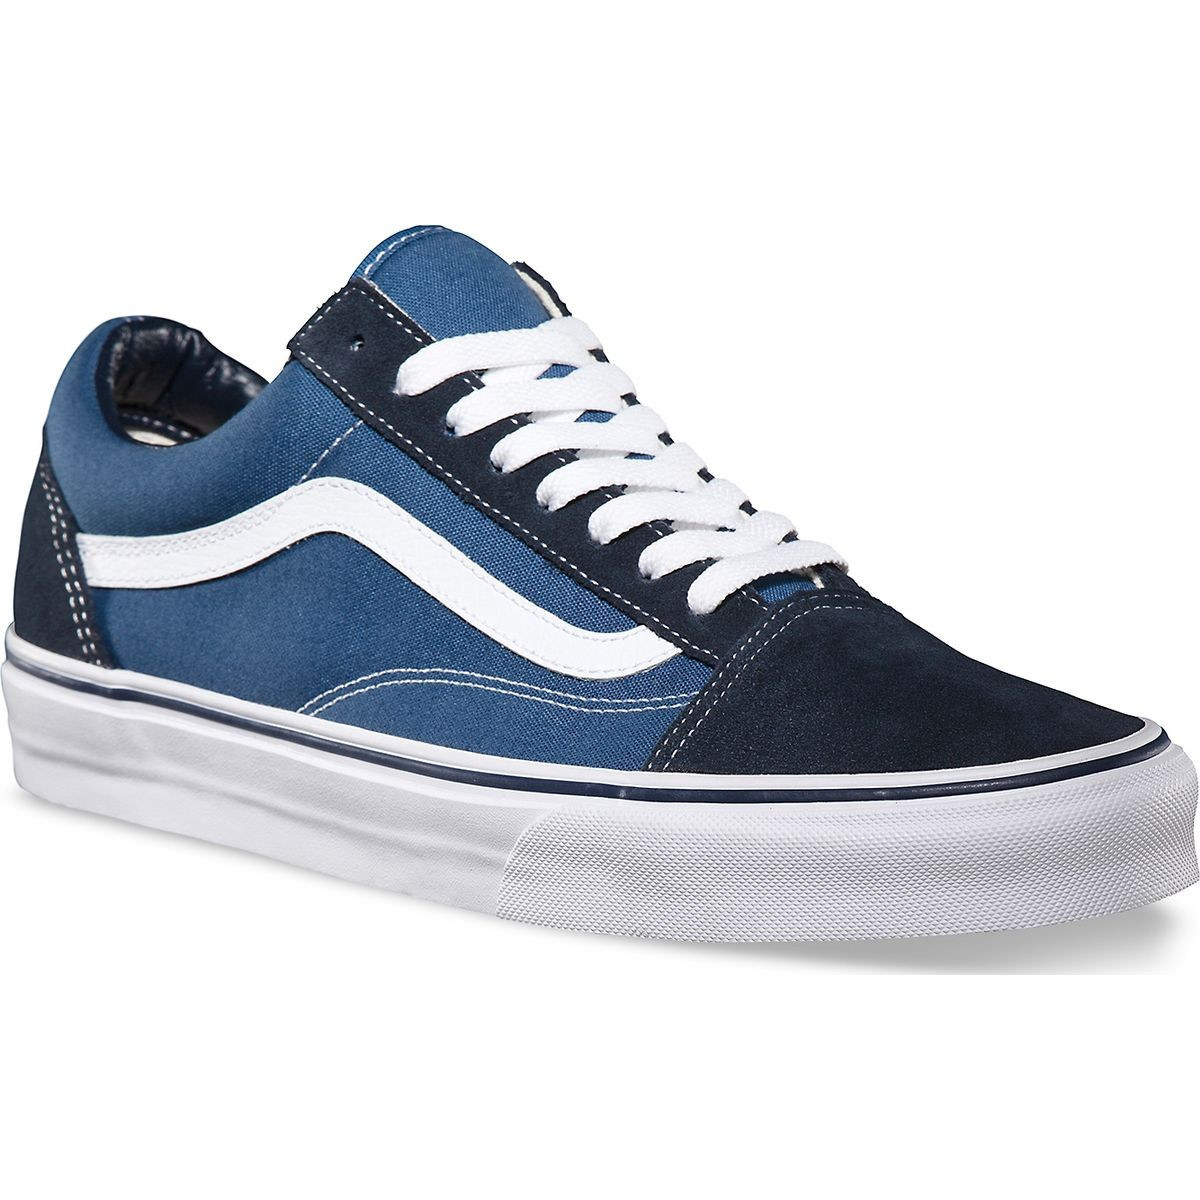 Vans Old Skool Core Classic Shoes - Navy - 7.0